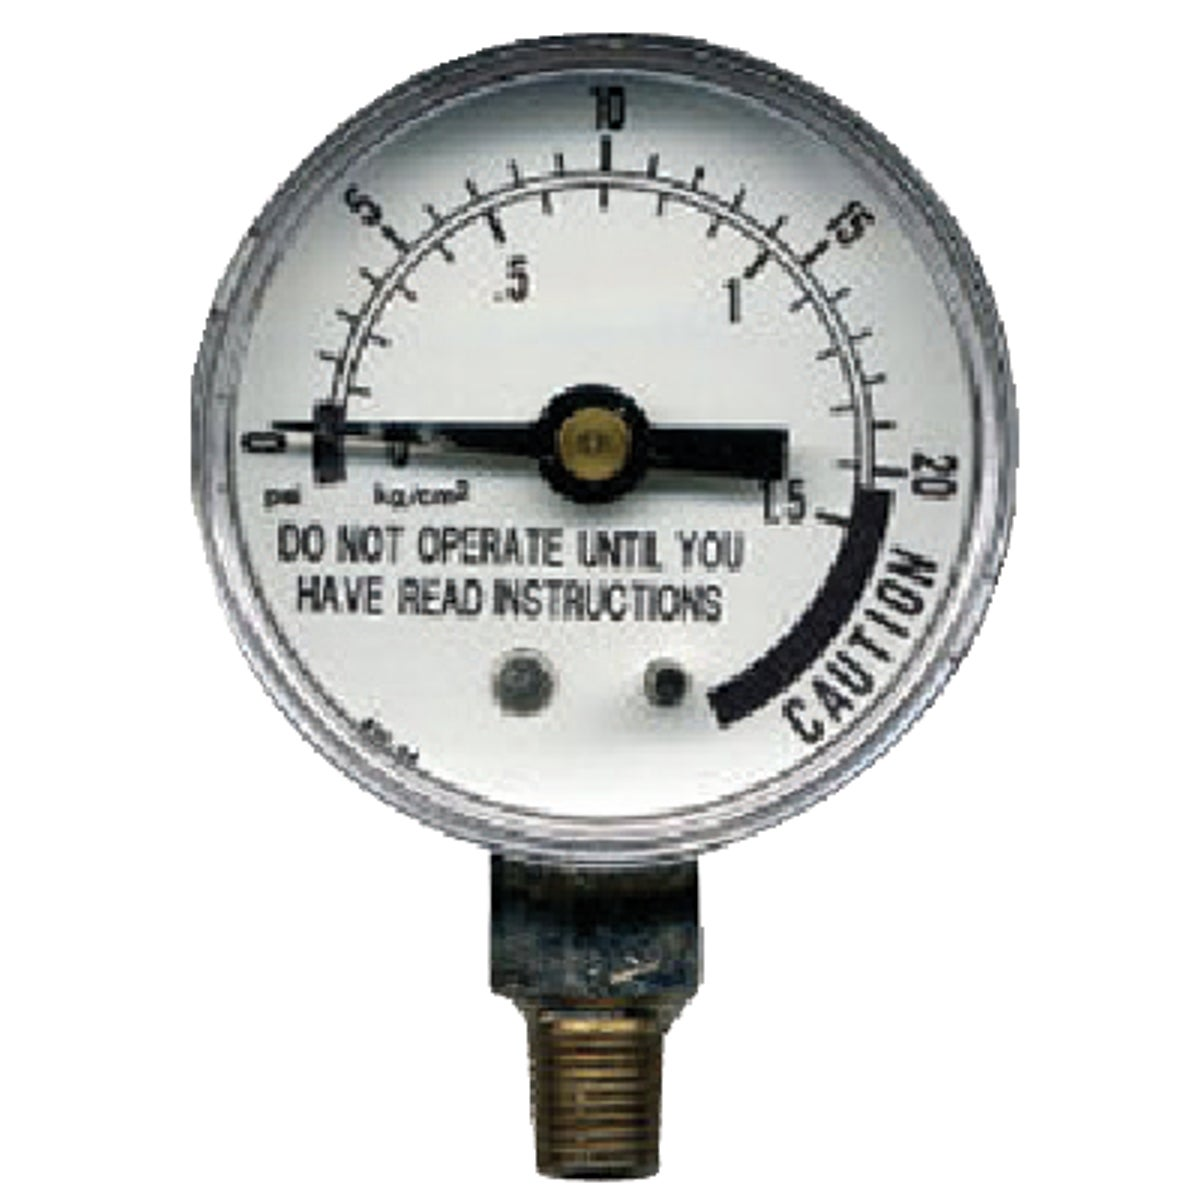 PRESSURE CANNER GAUGE - 85771 by National Presto